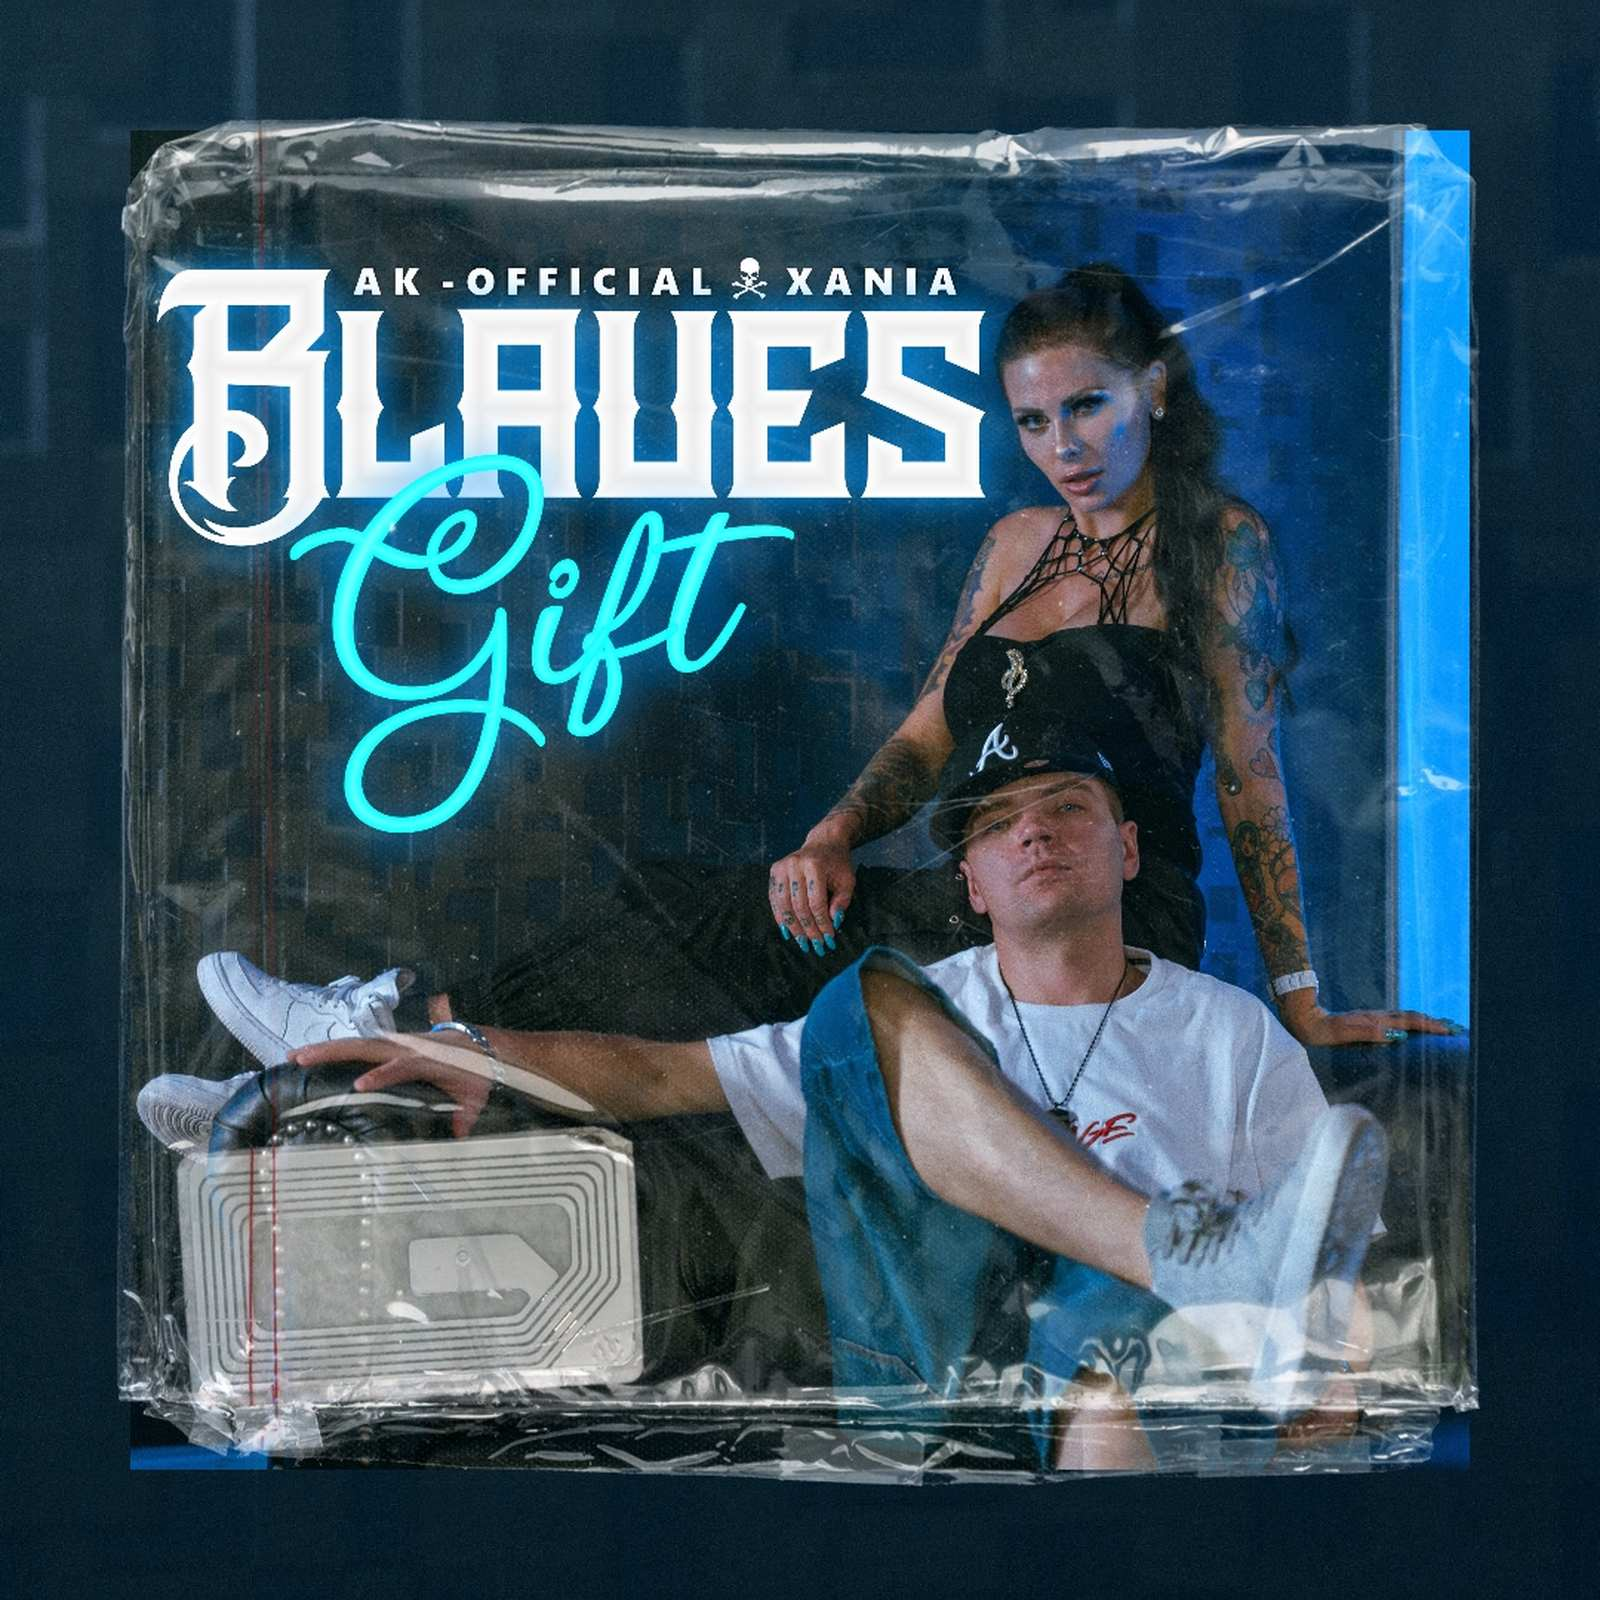 Upcoming: AK-Official X Xania - Blaues Gift